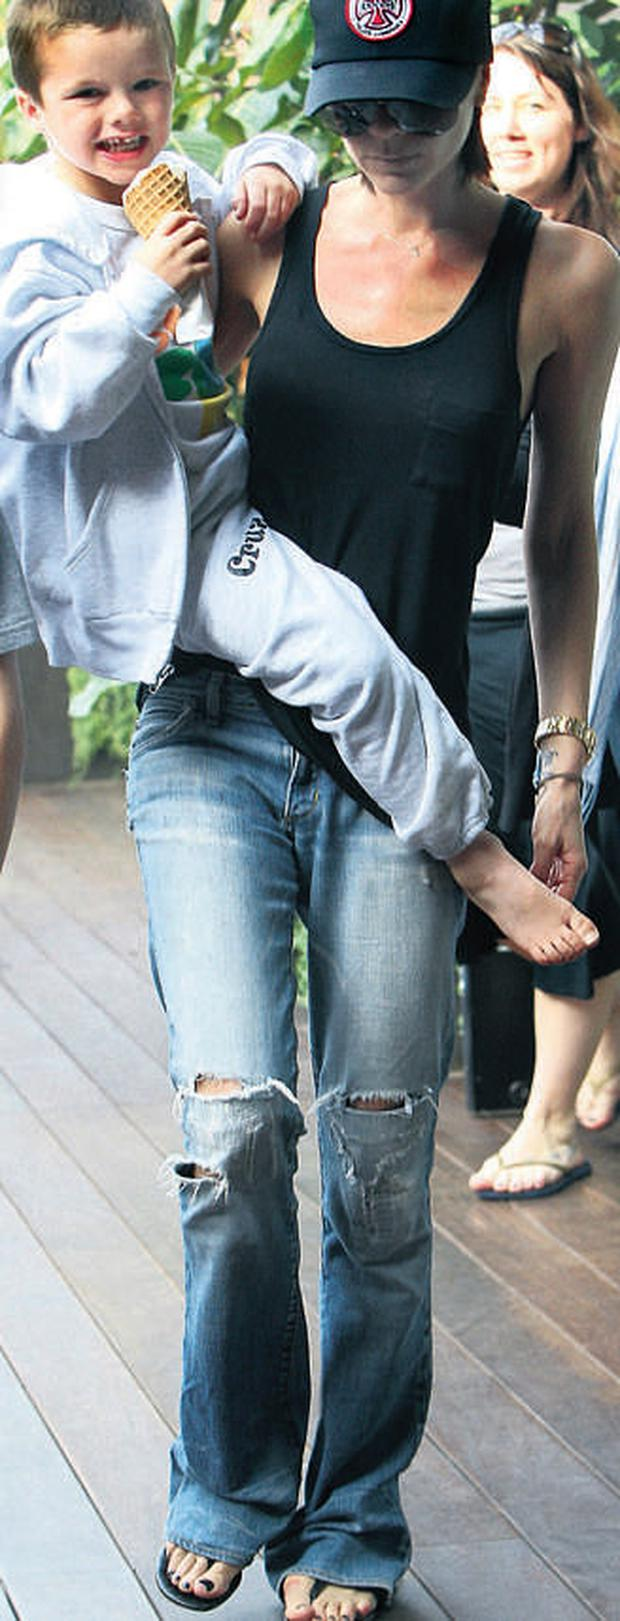 Best foot forward: Bunions forced Victoria Beckham, pictured with son Cruz, to wear flip-flops after years of wearing heels